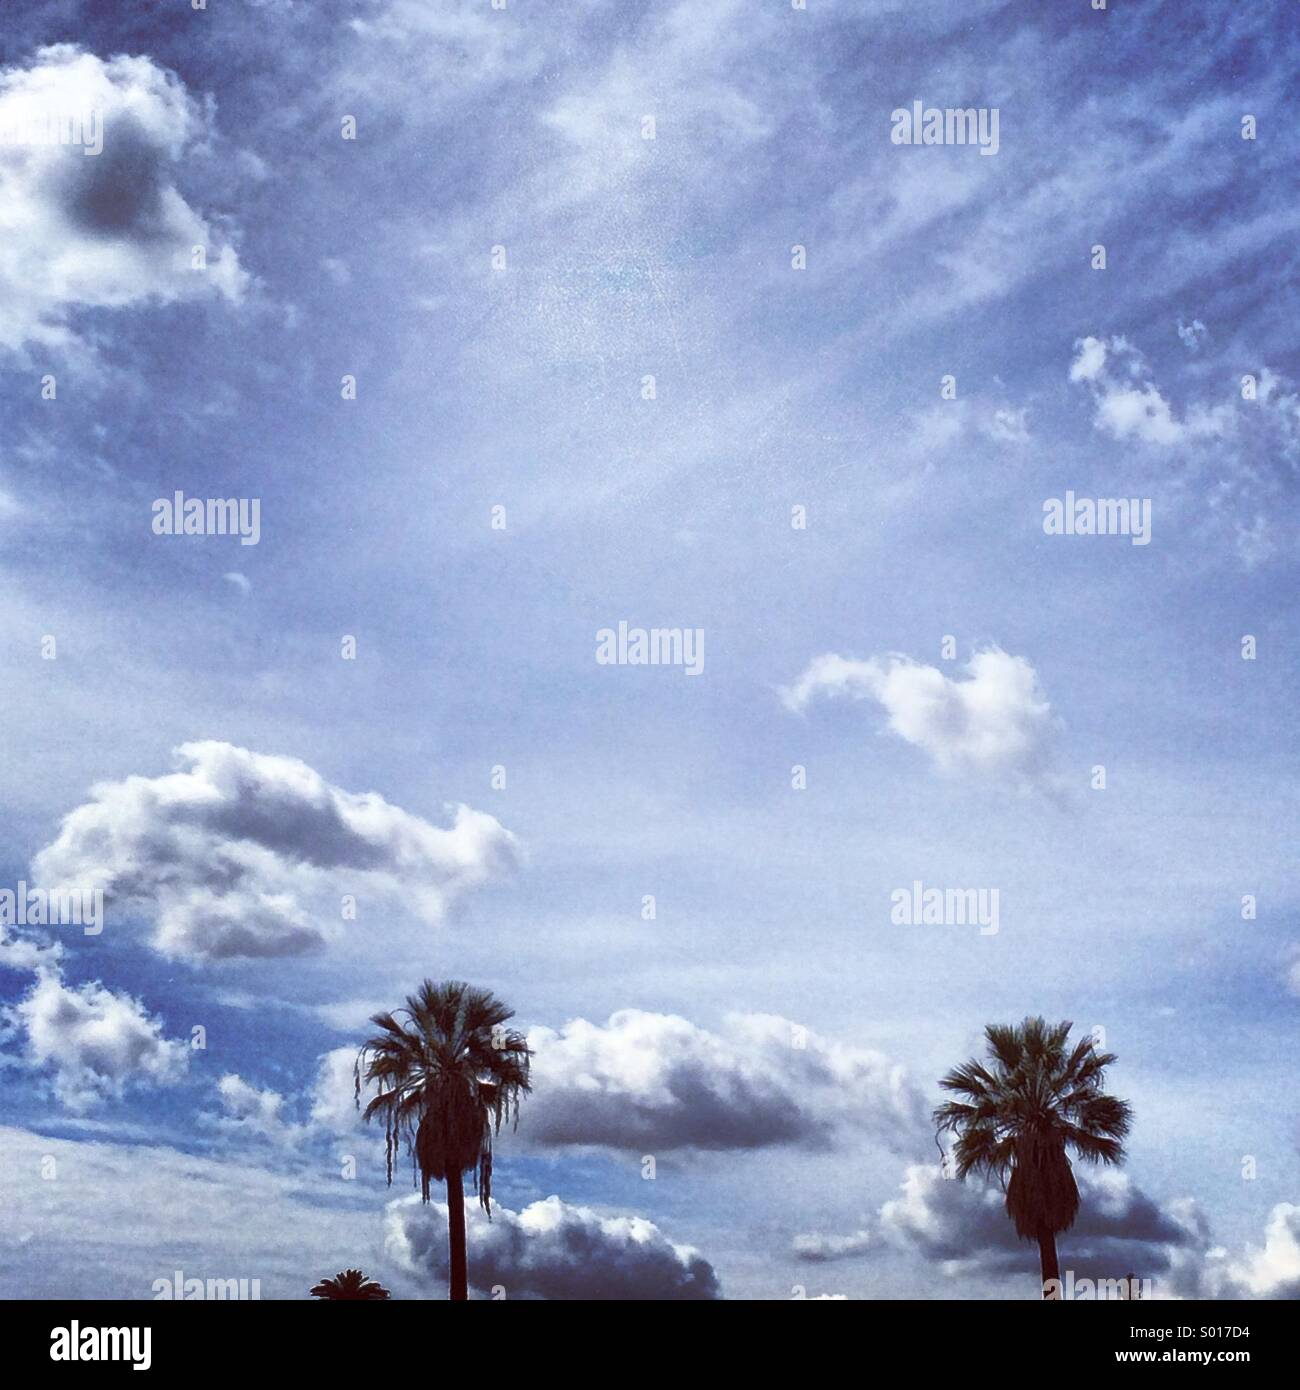 Clouds with two palm trees - Stock Image